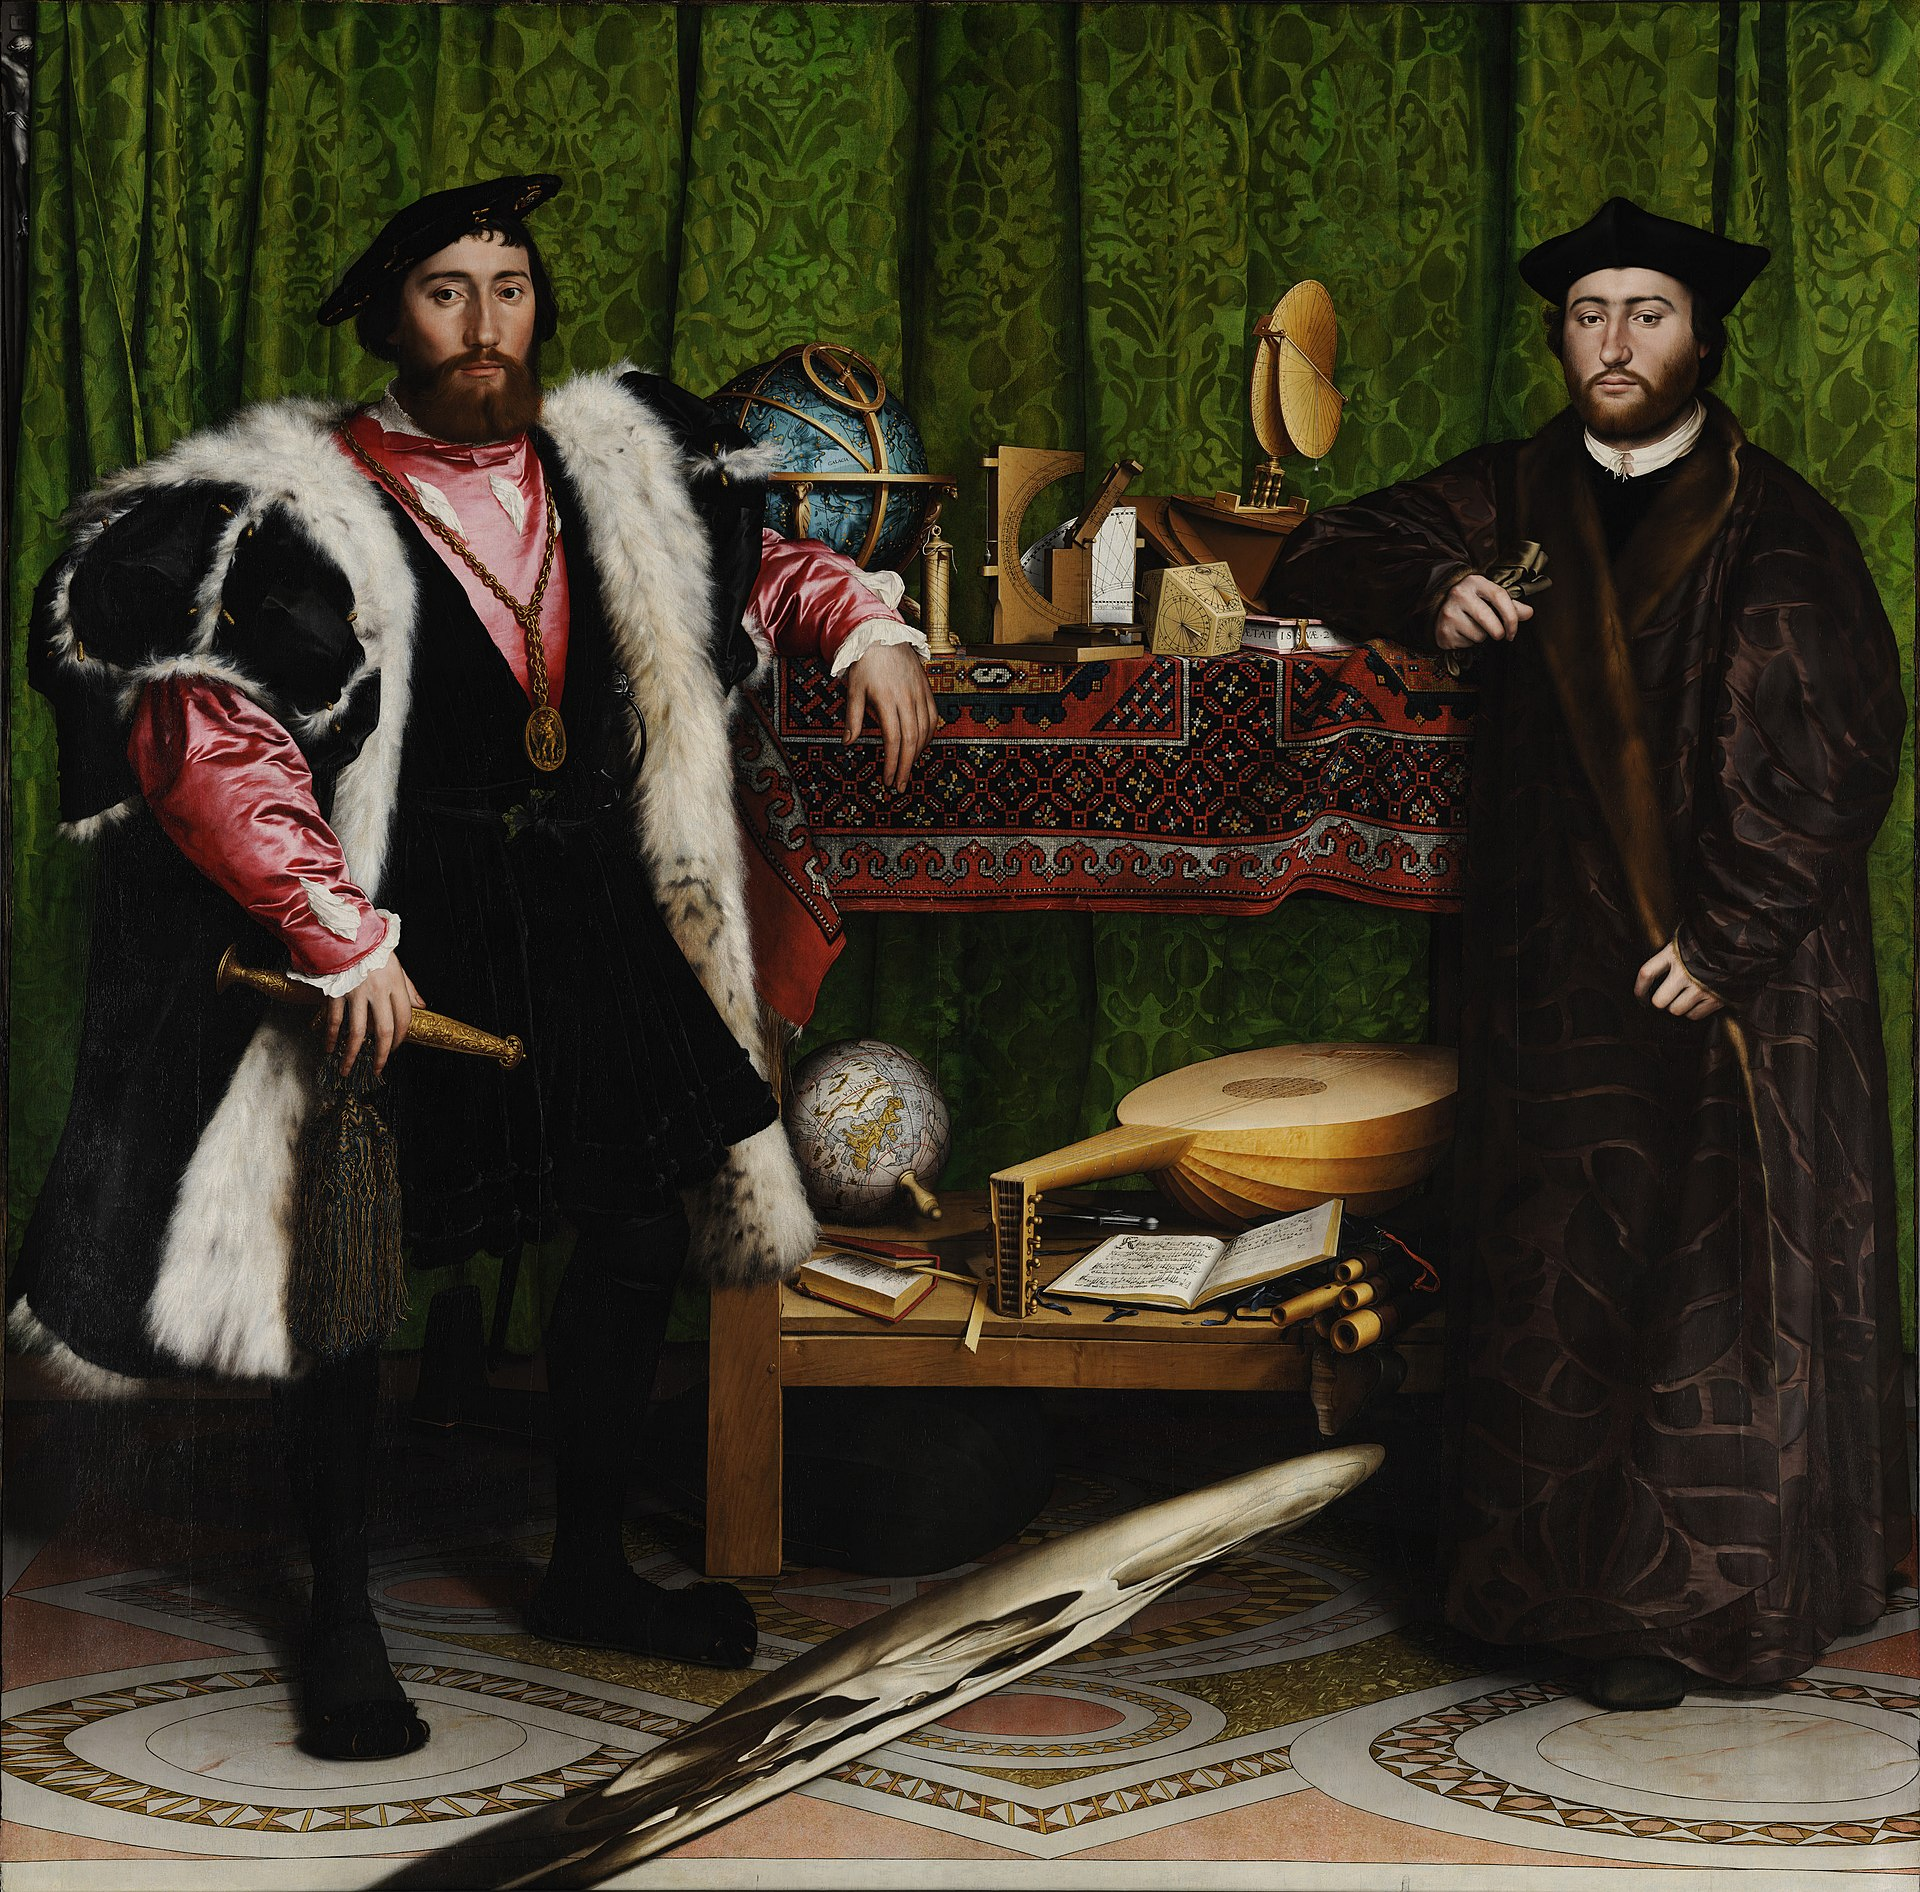 1920px-Hans_Holbein_the_Younger_-_The_Ambassadors_-_Google_Art_Project